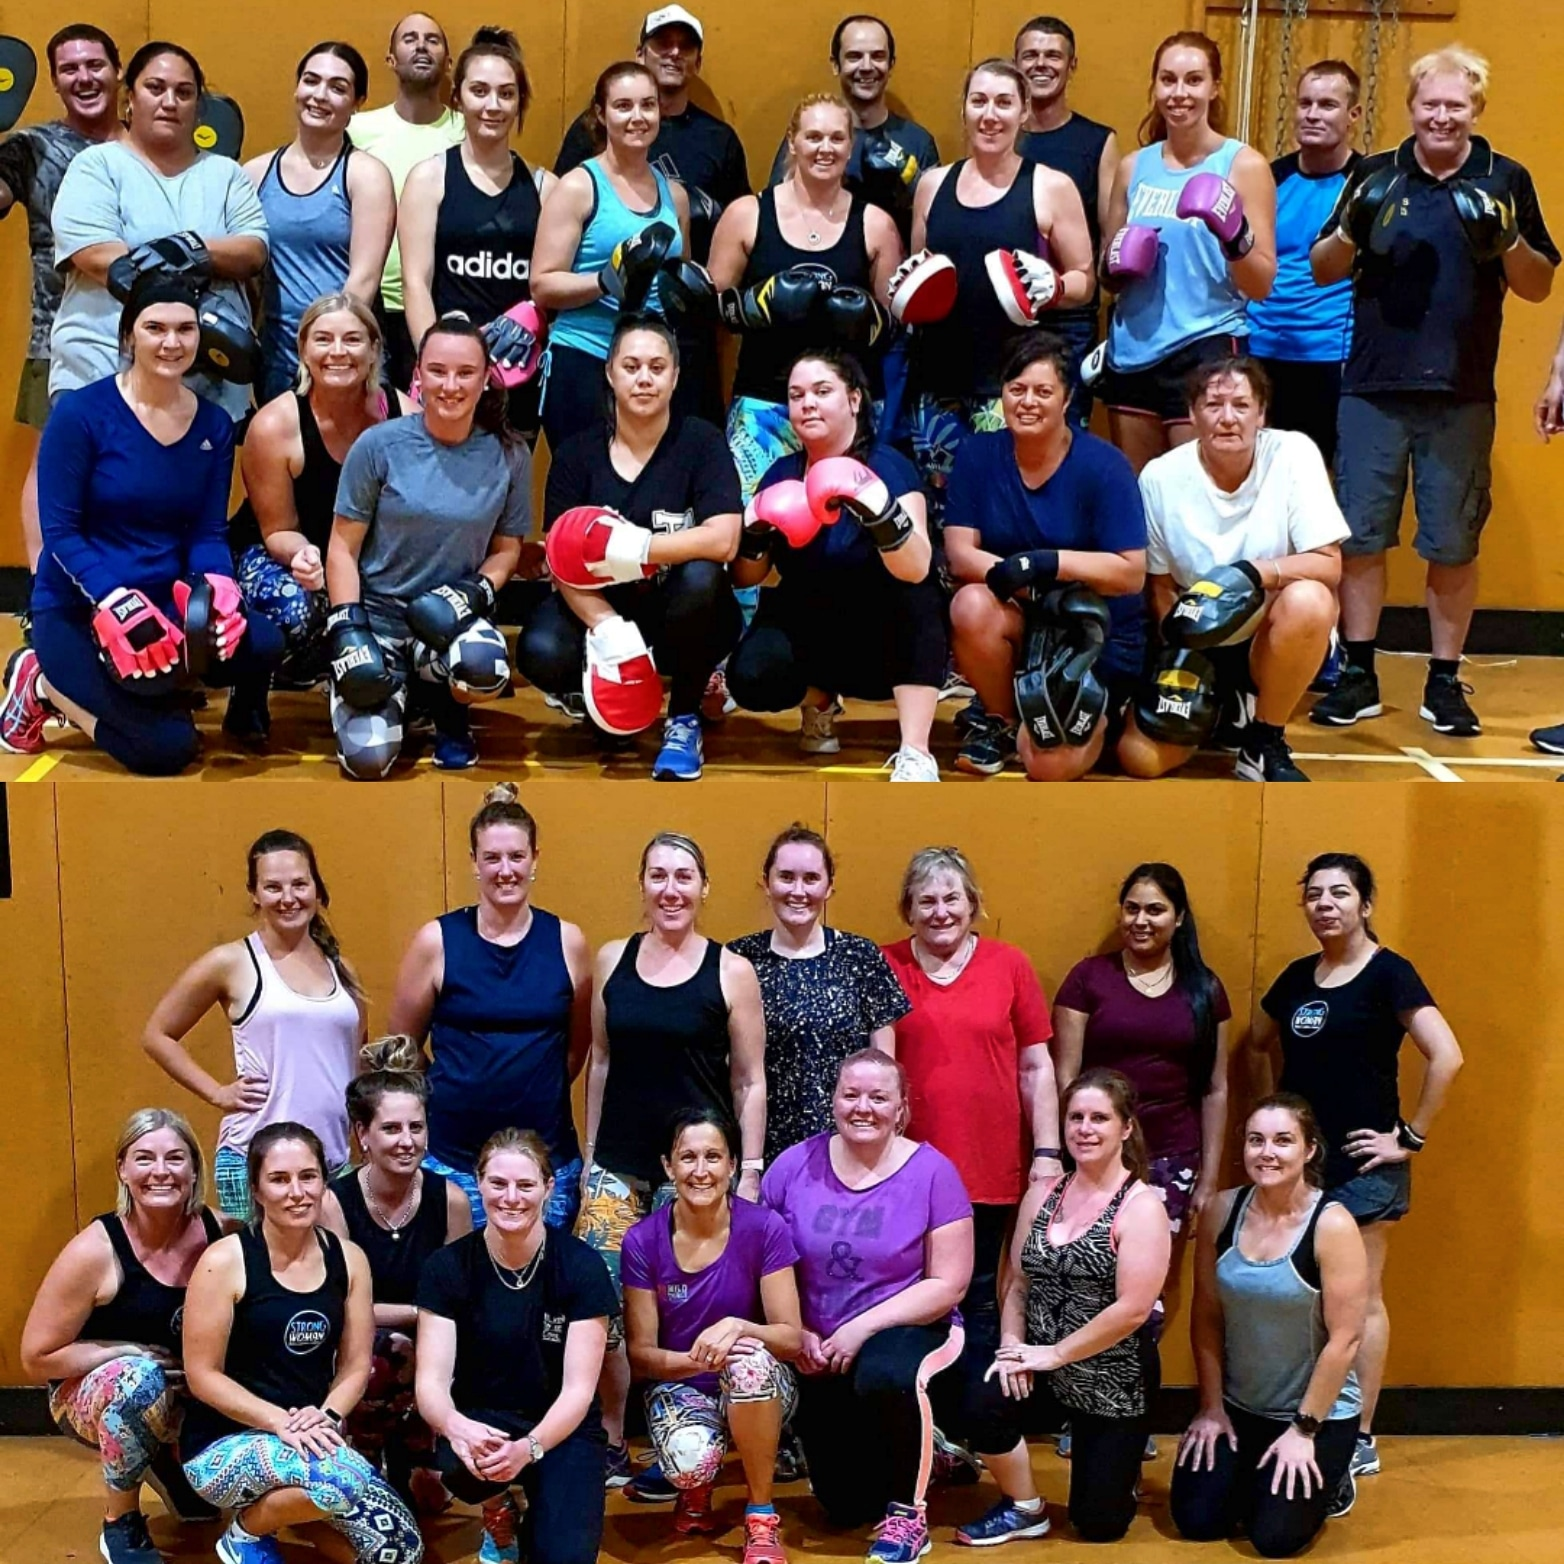 Strong woman group fitness class pictures.jpg